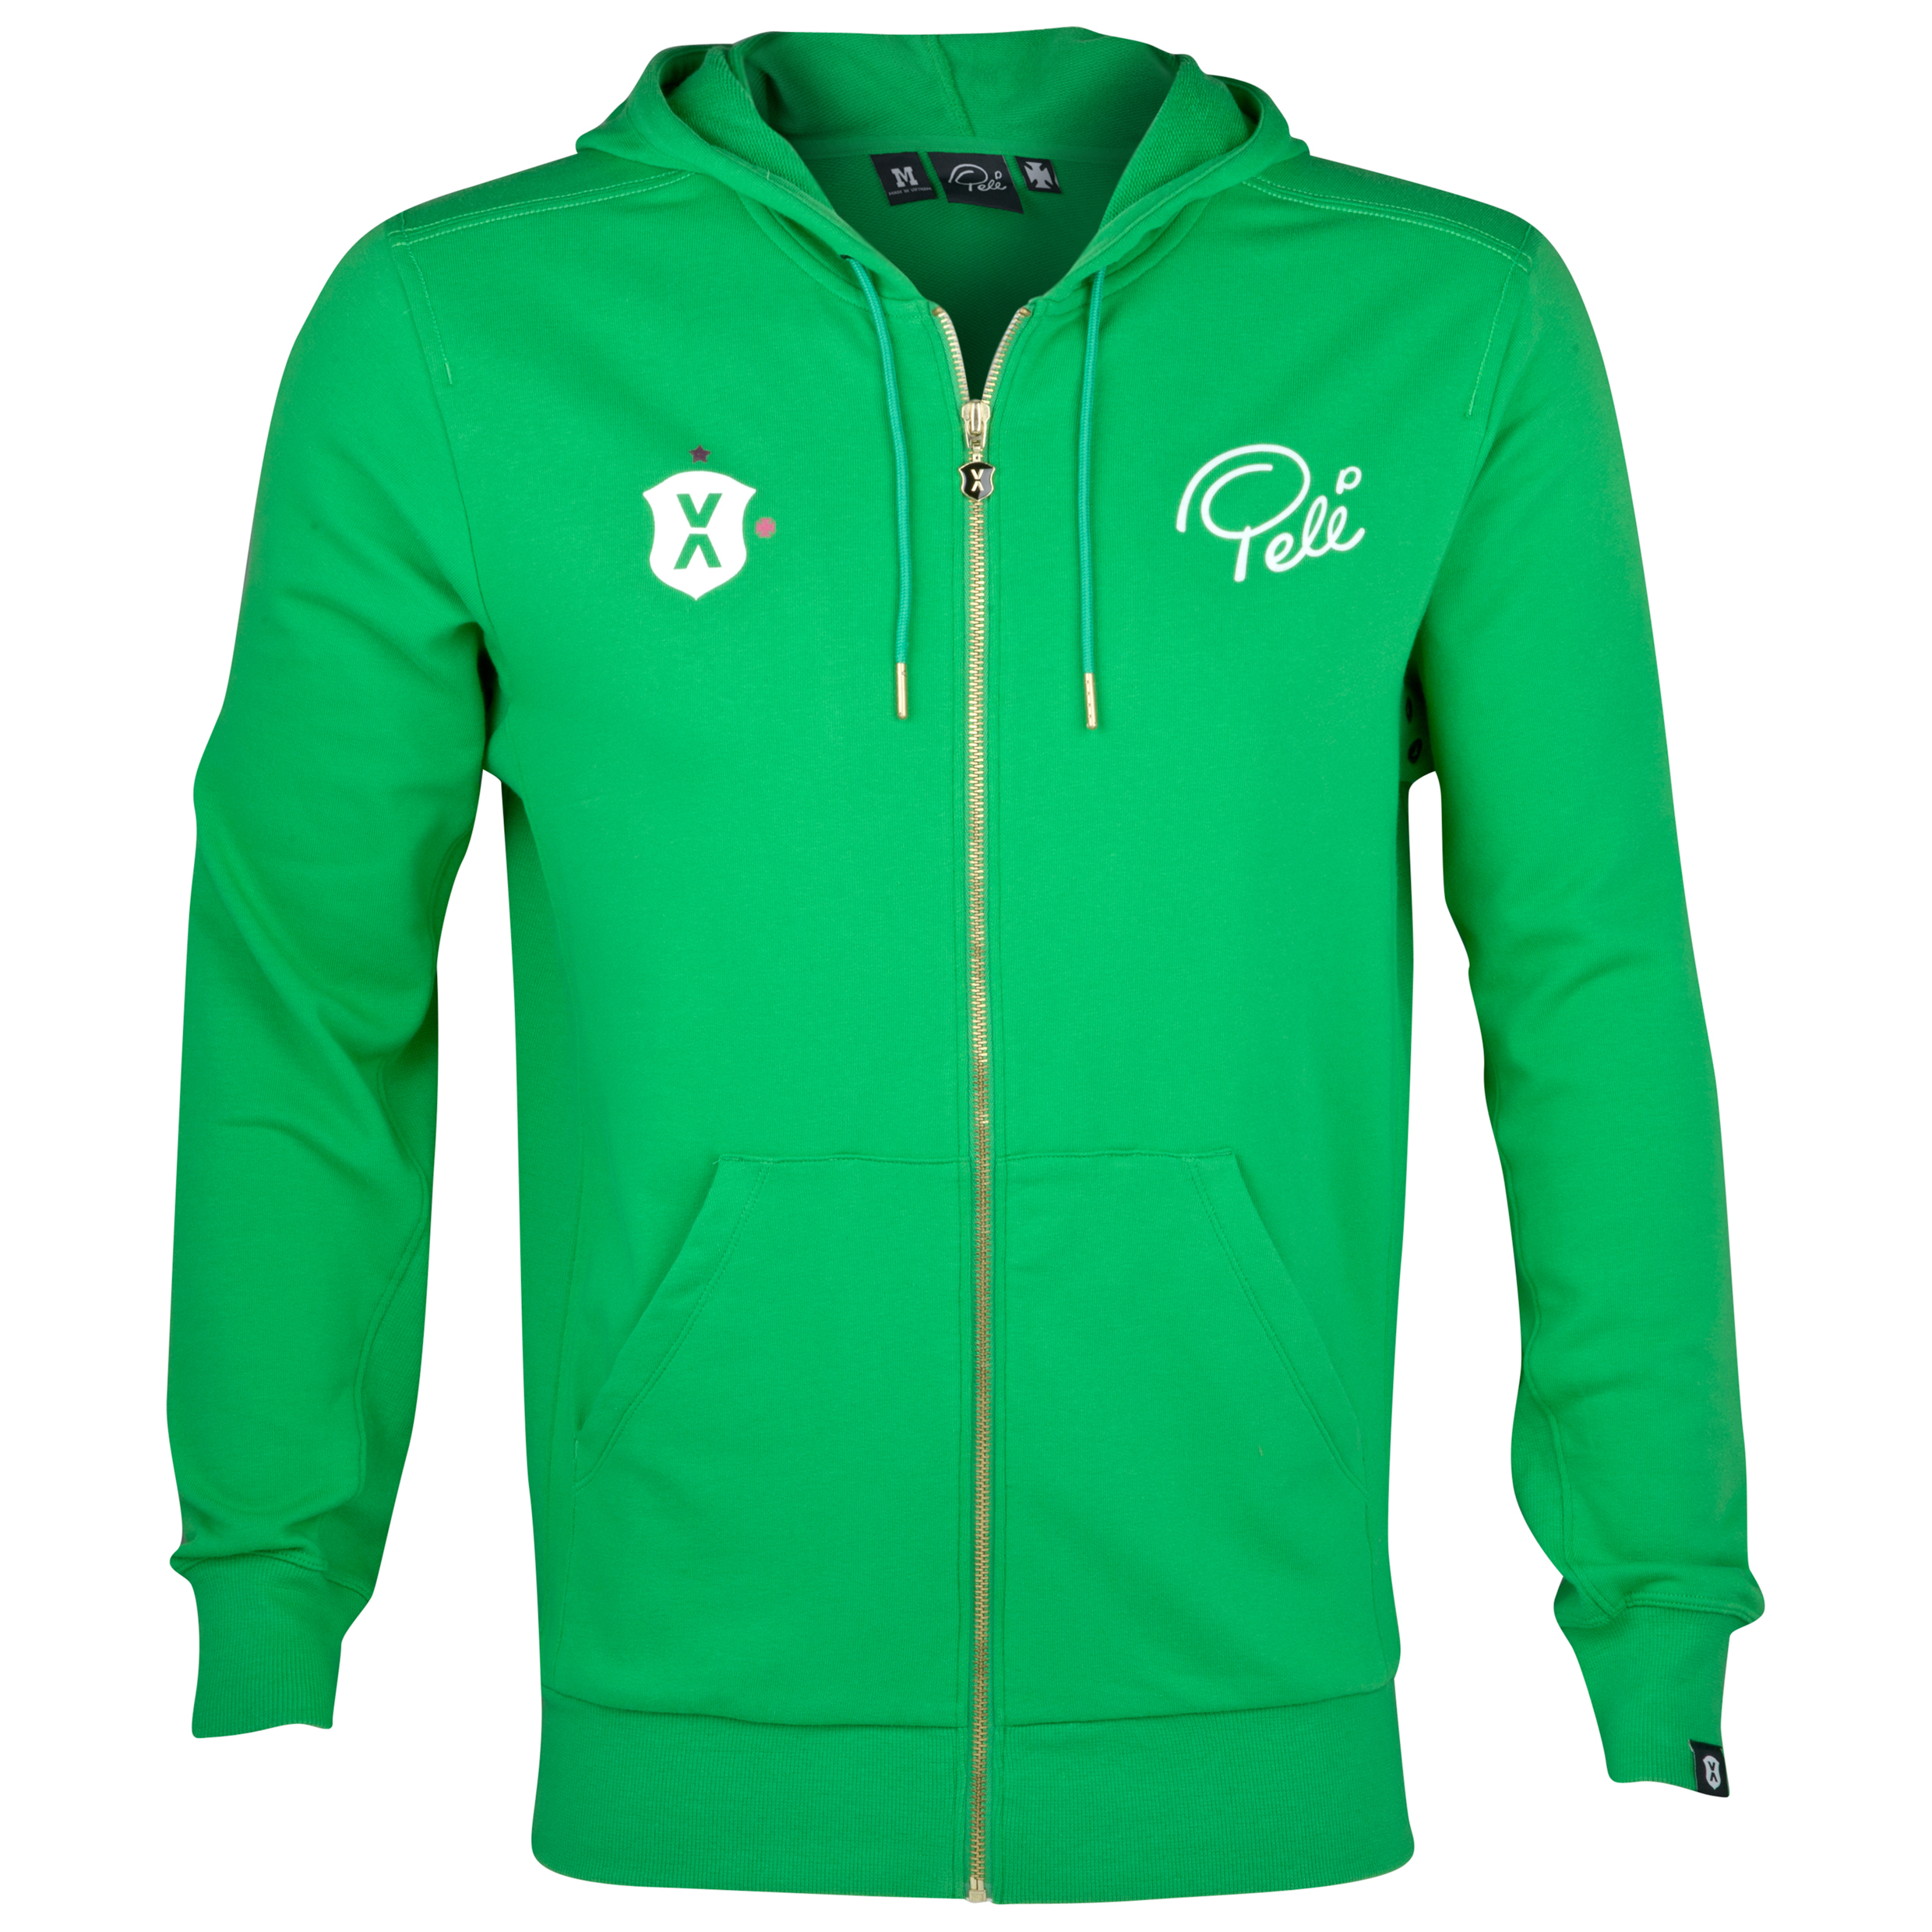 Pele Sports Zip Hoody - Classic Green